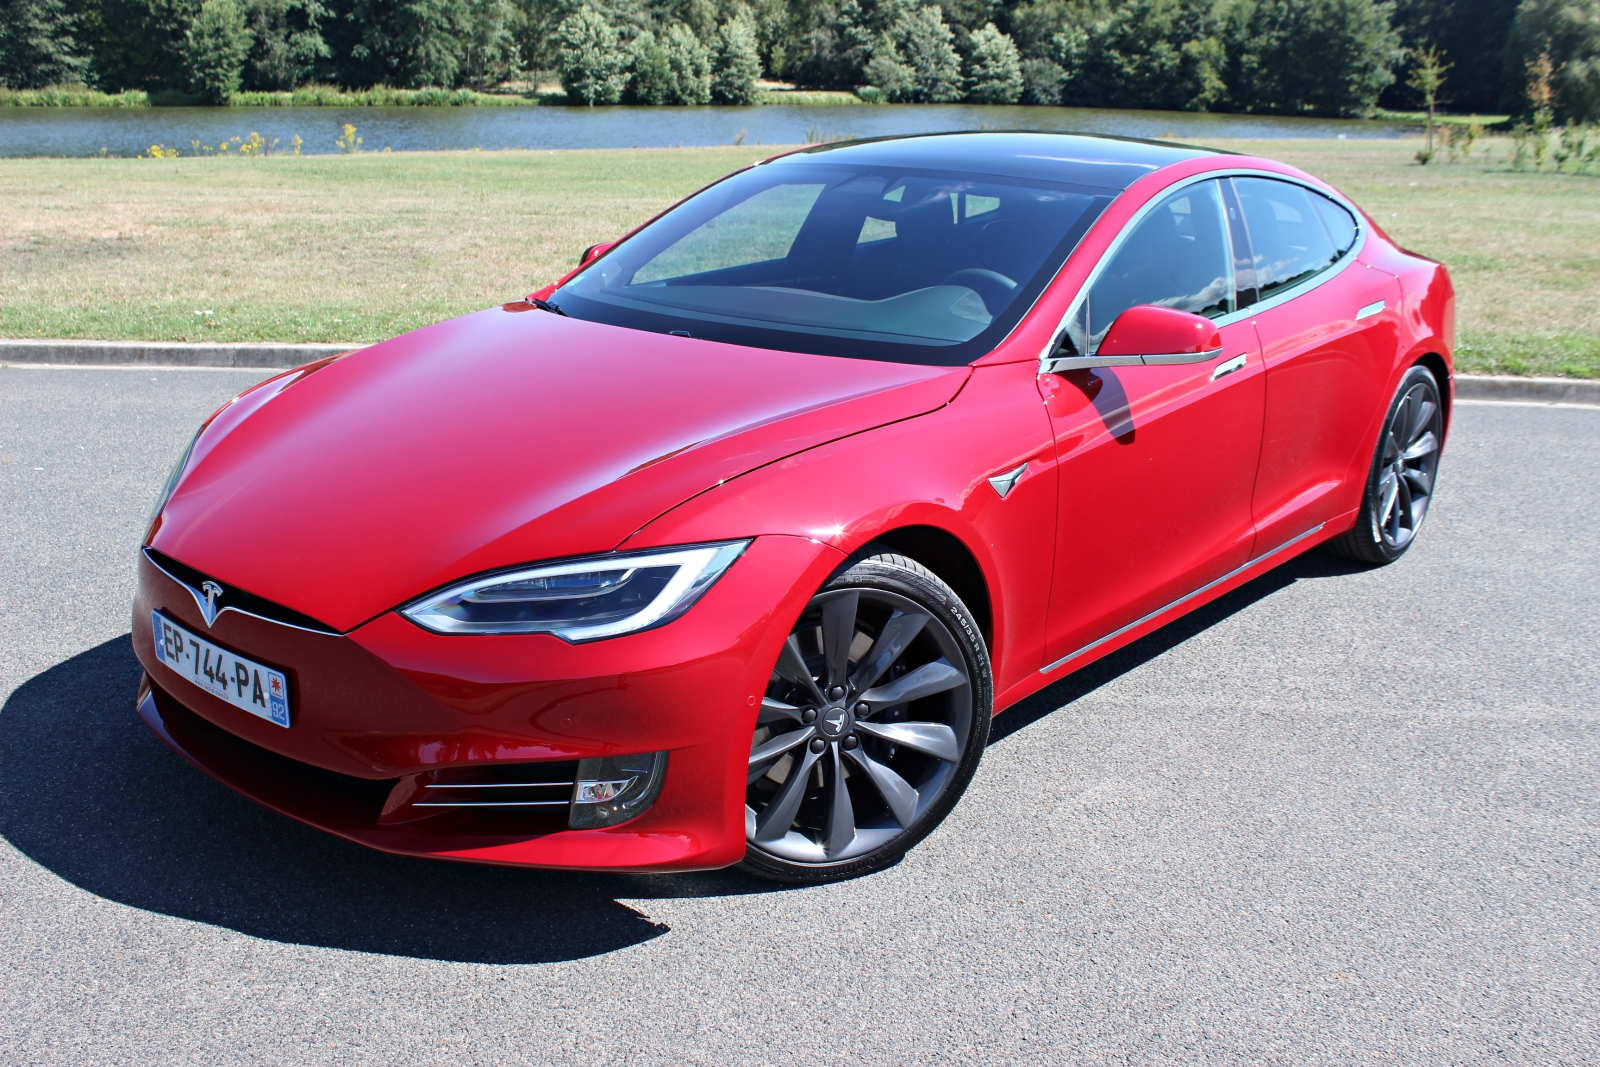 essai tesla model s 100d championne du monde. Black Bedroom Furniture Sets. Home Design Ideas